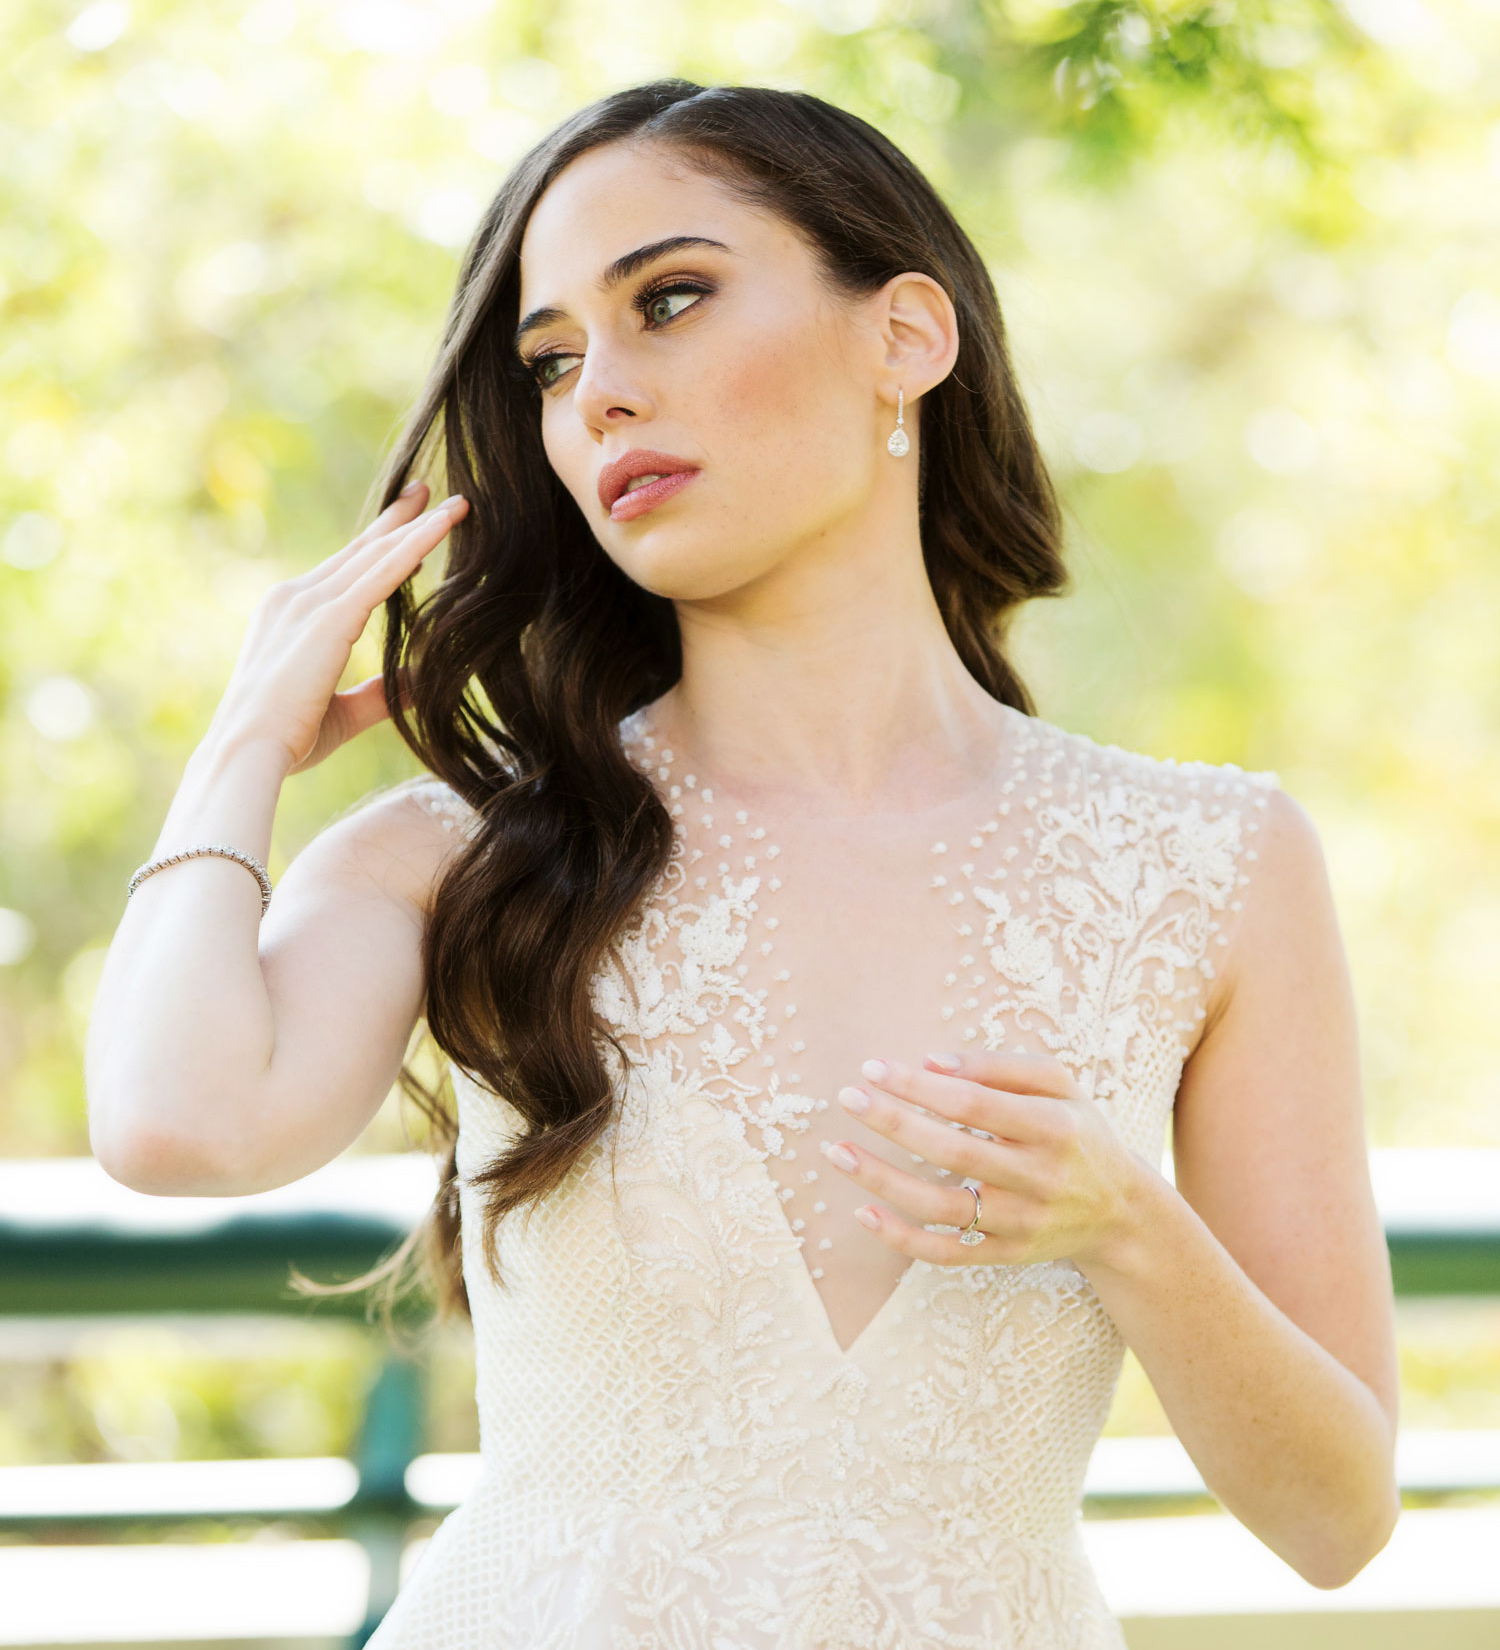 timeline to get healthy, strong hair by wedding day